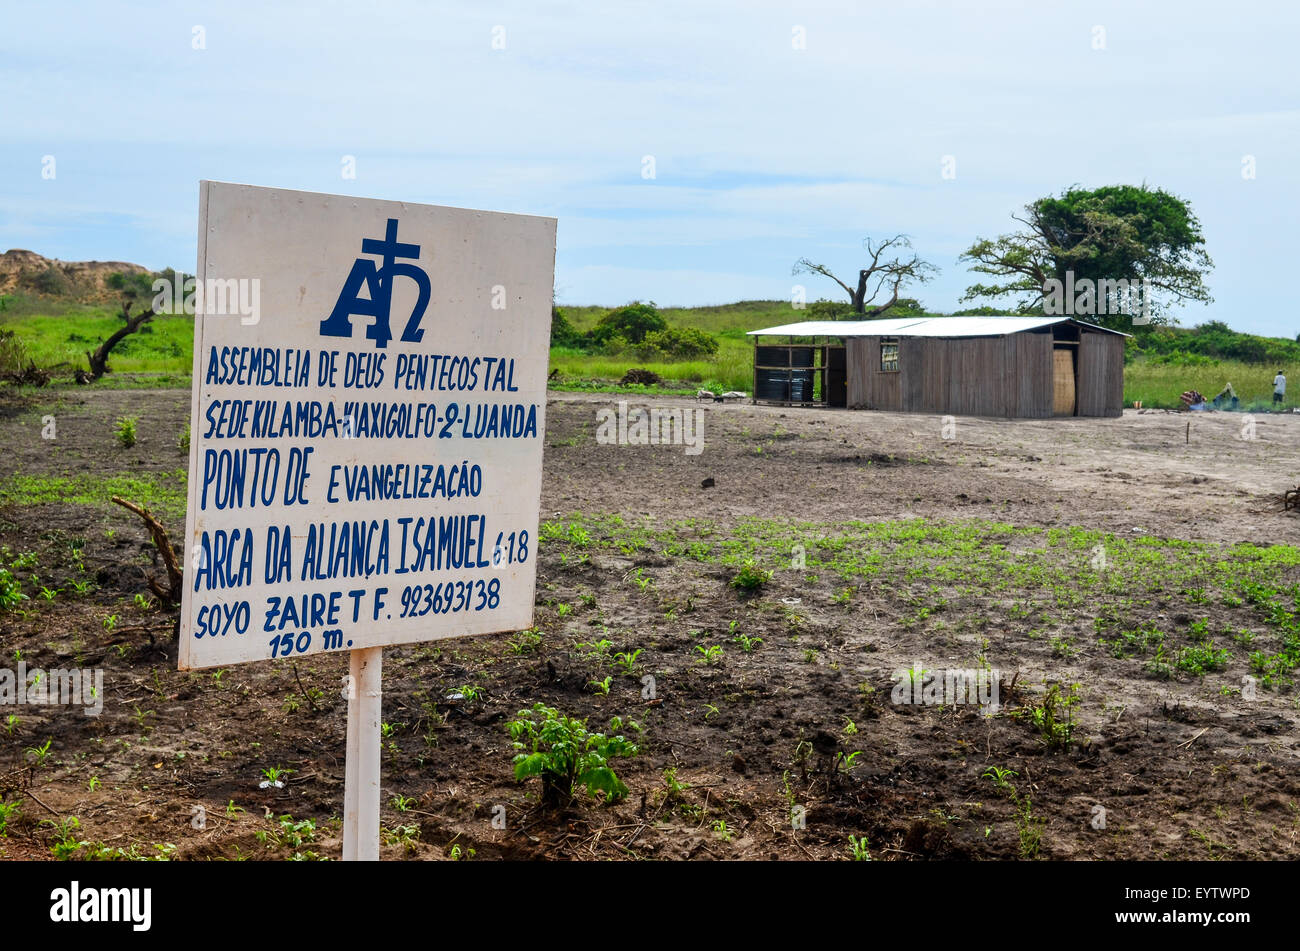 Pentecostal church in rural Angola - Stock Image